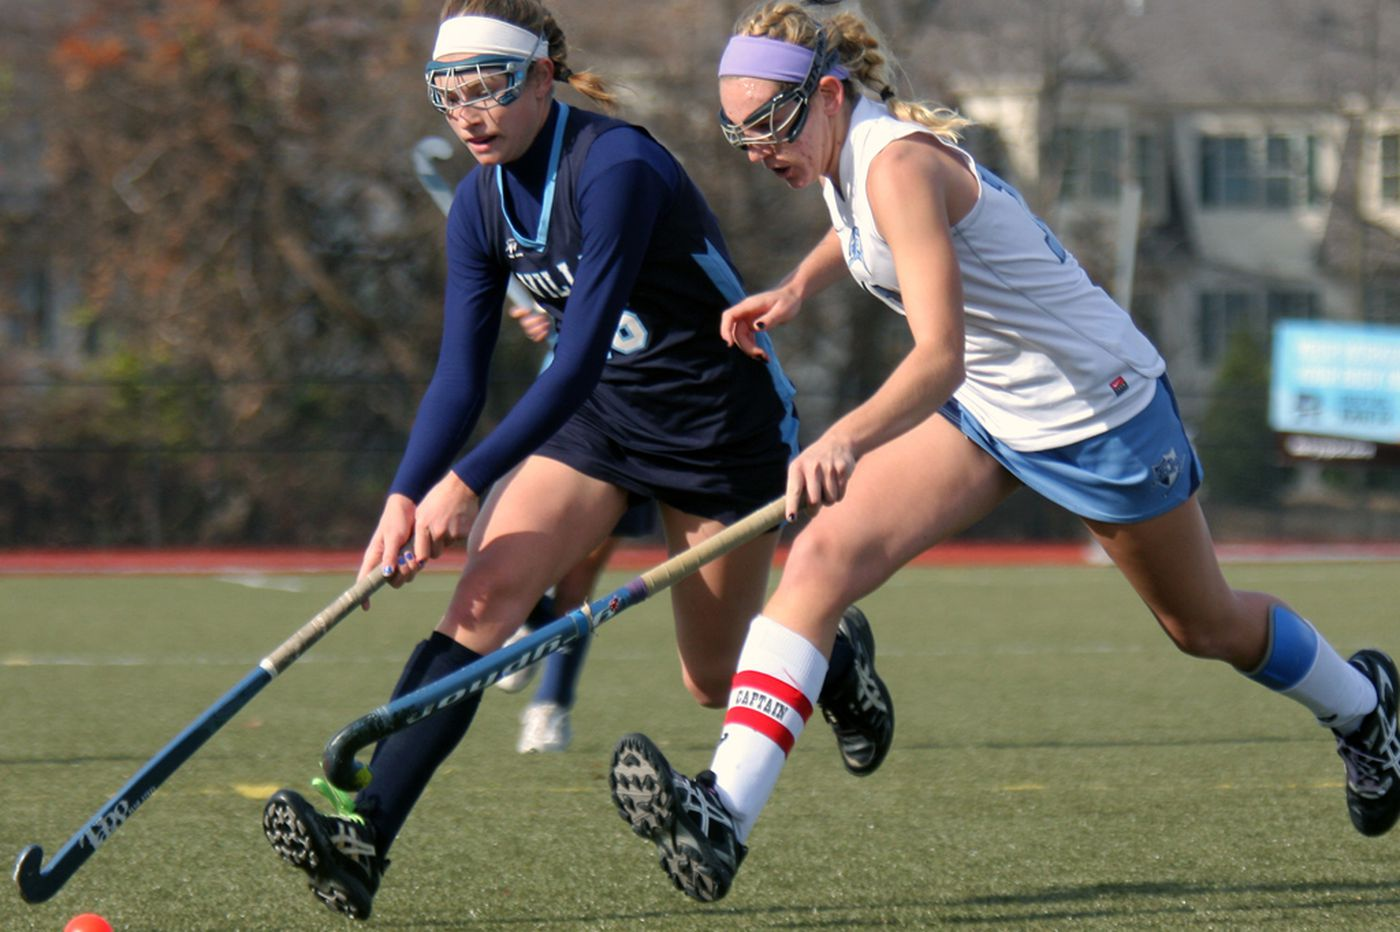 Tuesday's Southeastern Pa. roundup: AiYi Young's OT goal leads Upper Perkiomen field hockey past West Chester Henderson in District 1 Class 2A playoffs